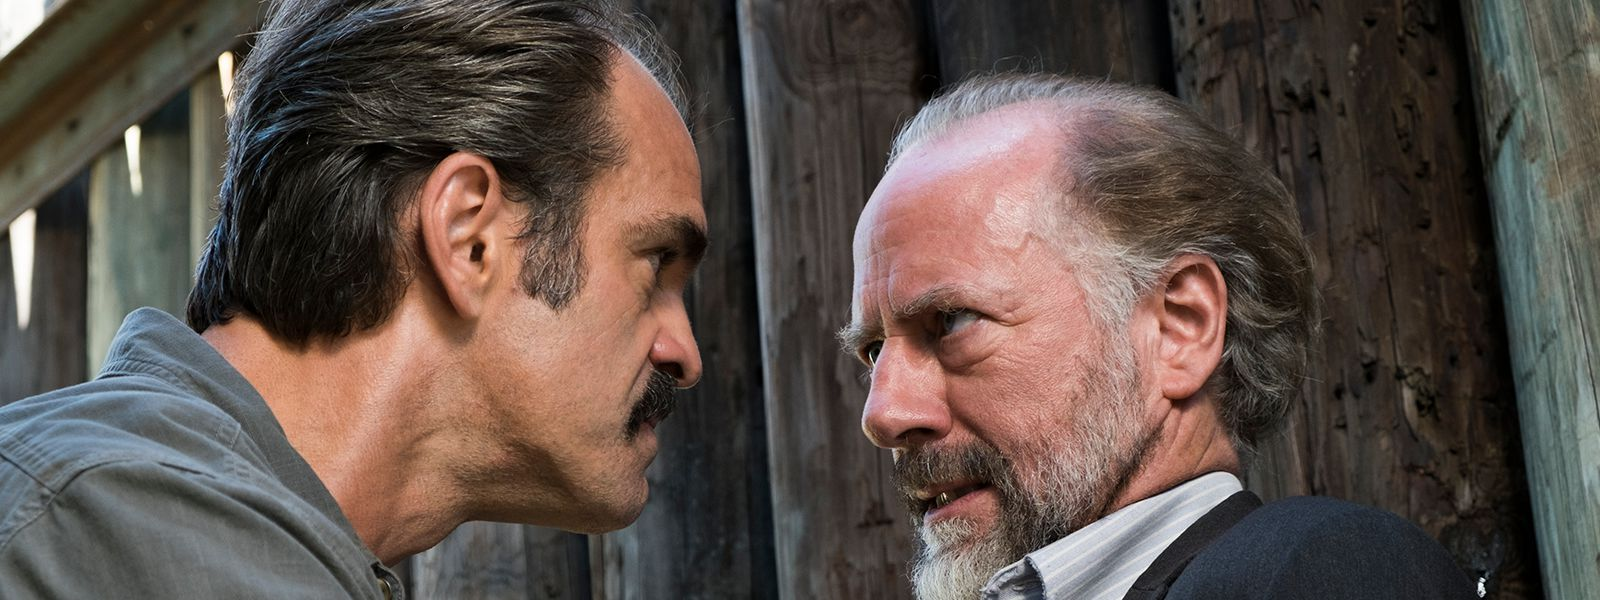 the-walking-dead-episode-714-simon-ogg-gregory-berkley-post-800×600